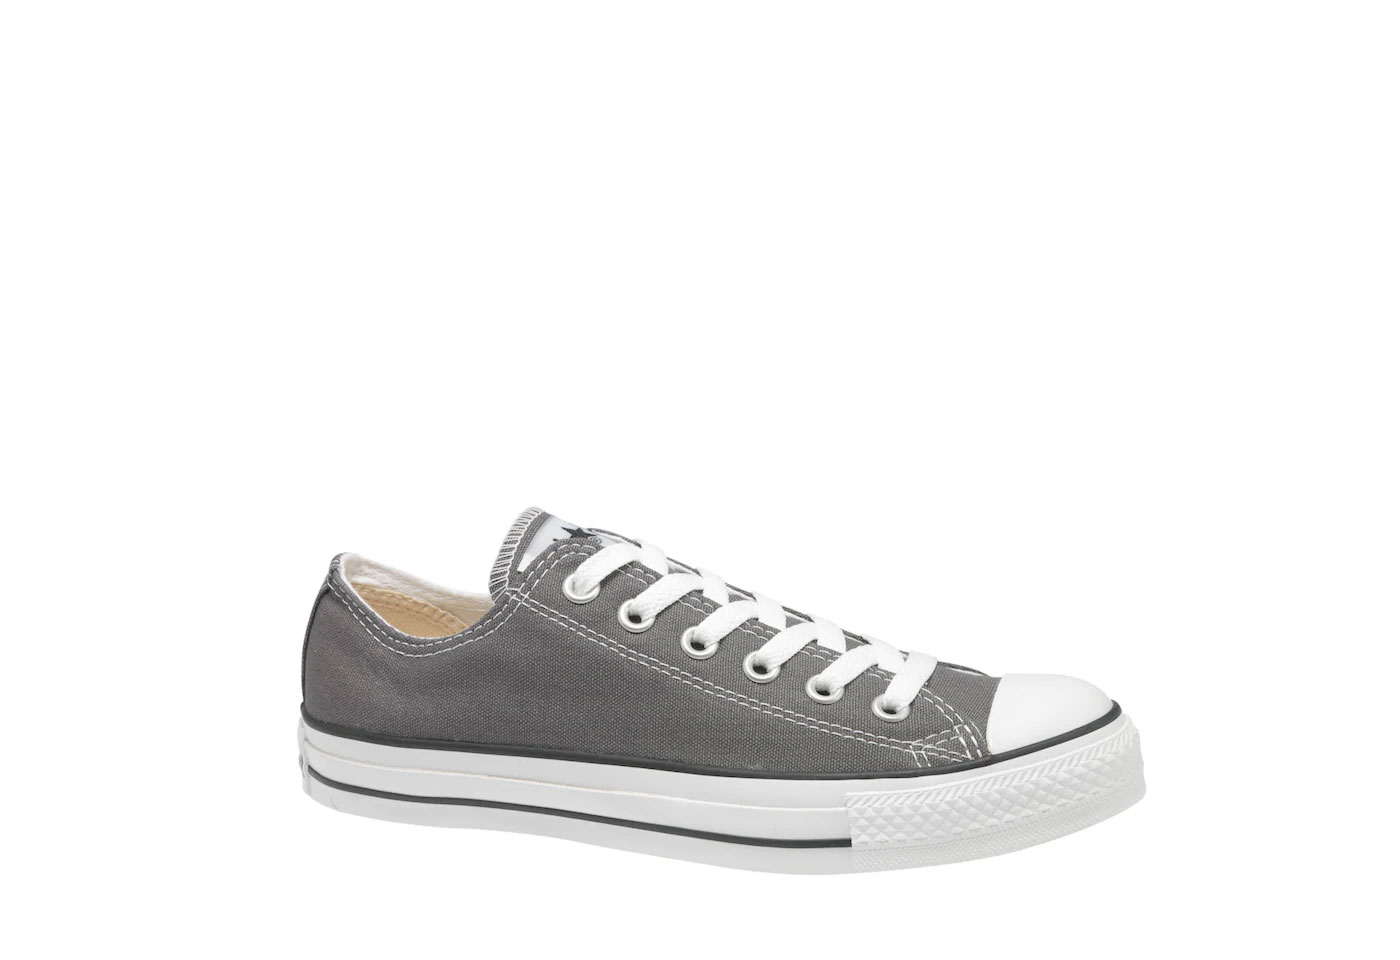 The Shoe Company:Converse Chuck Taylor Low Oxford只賣$17.98